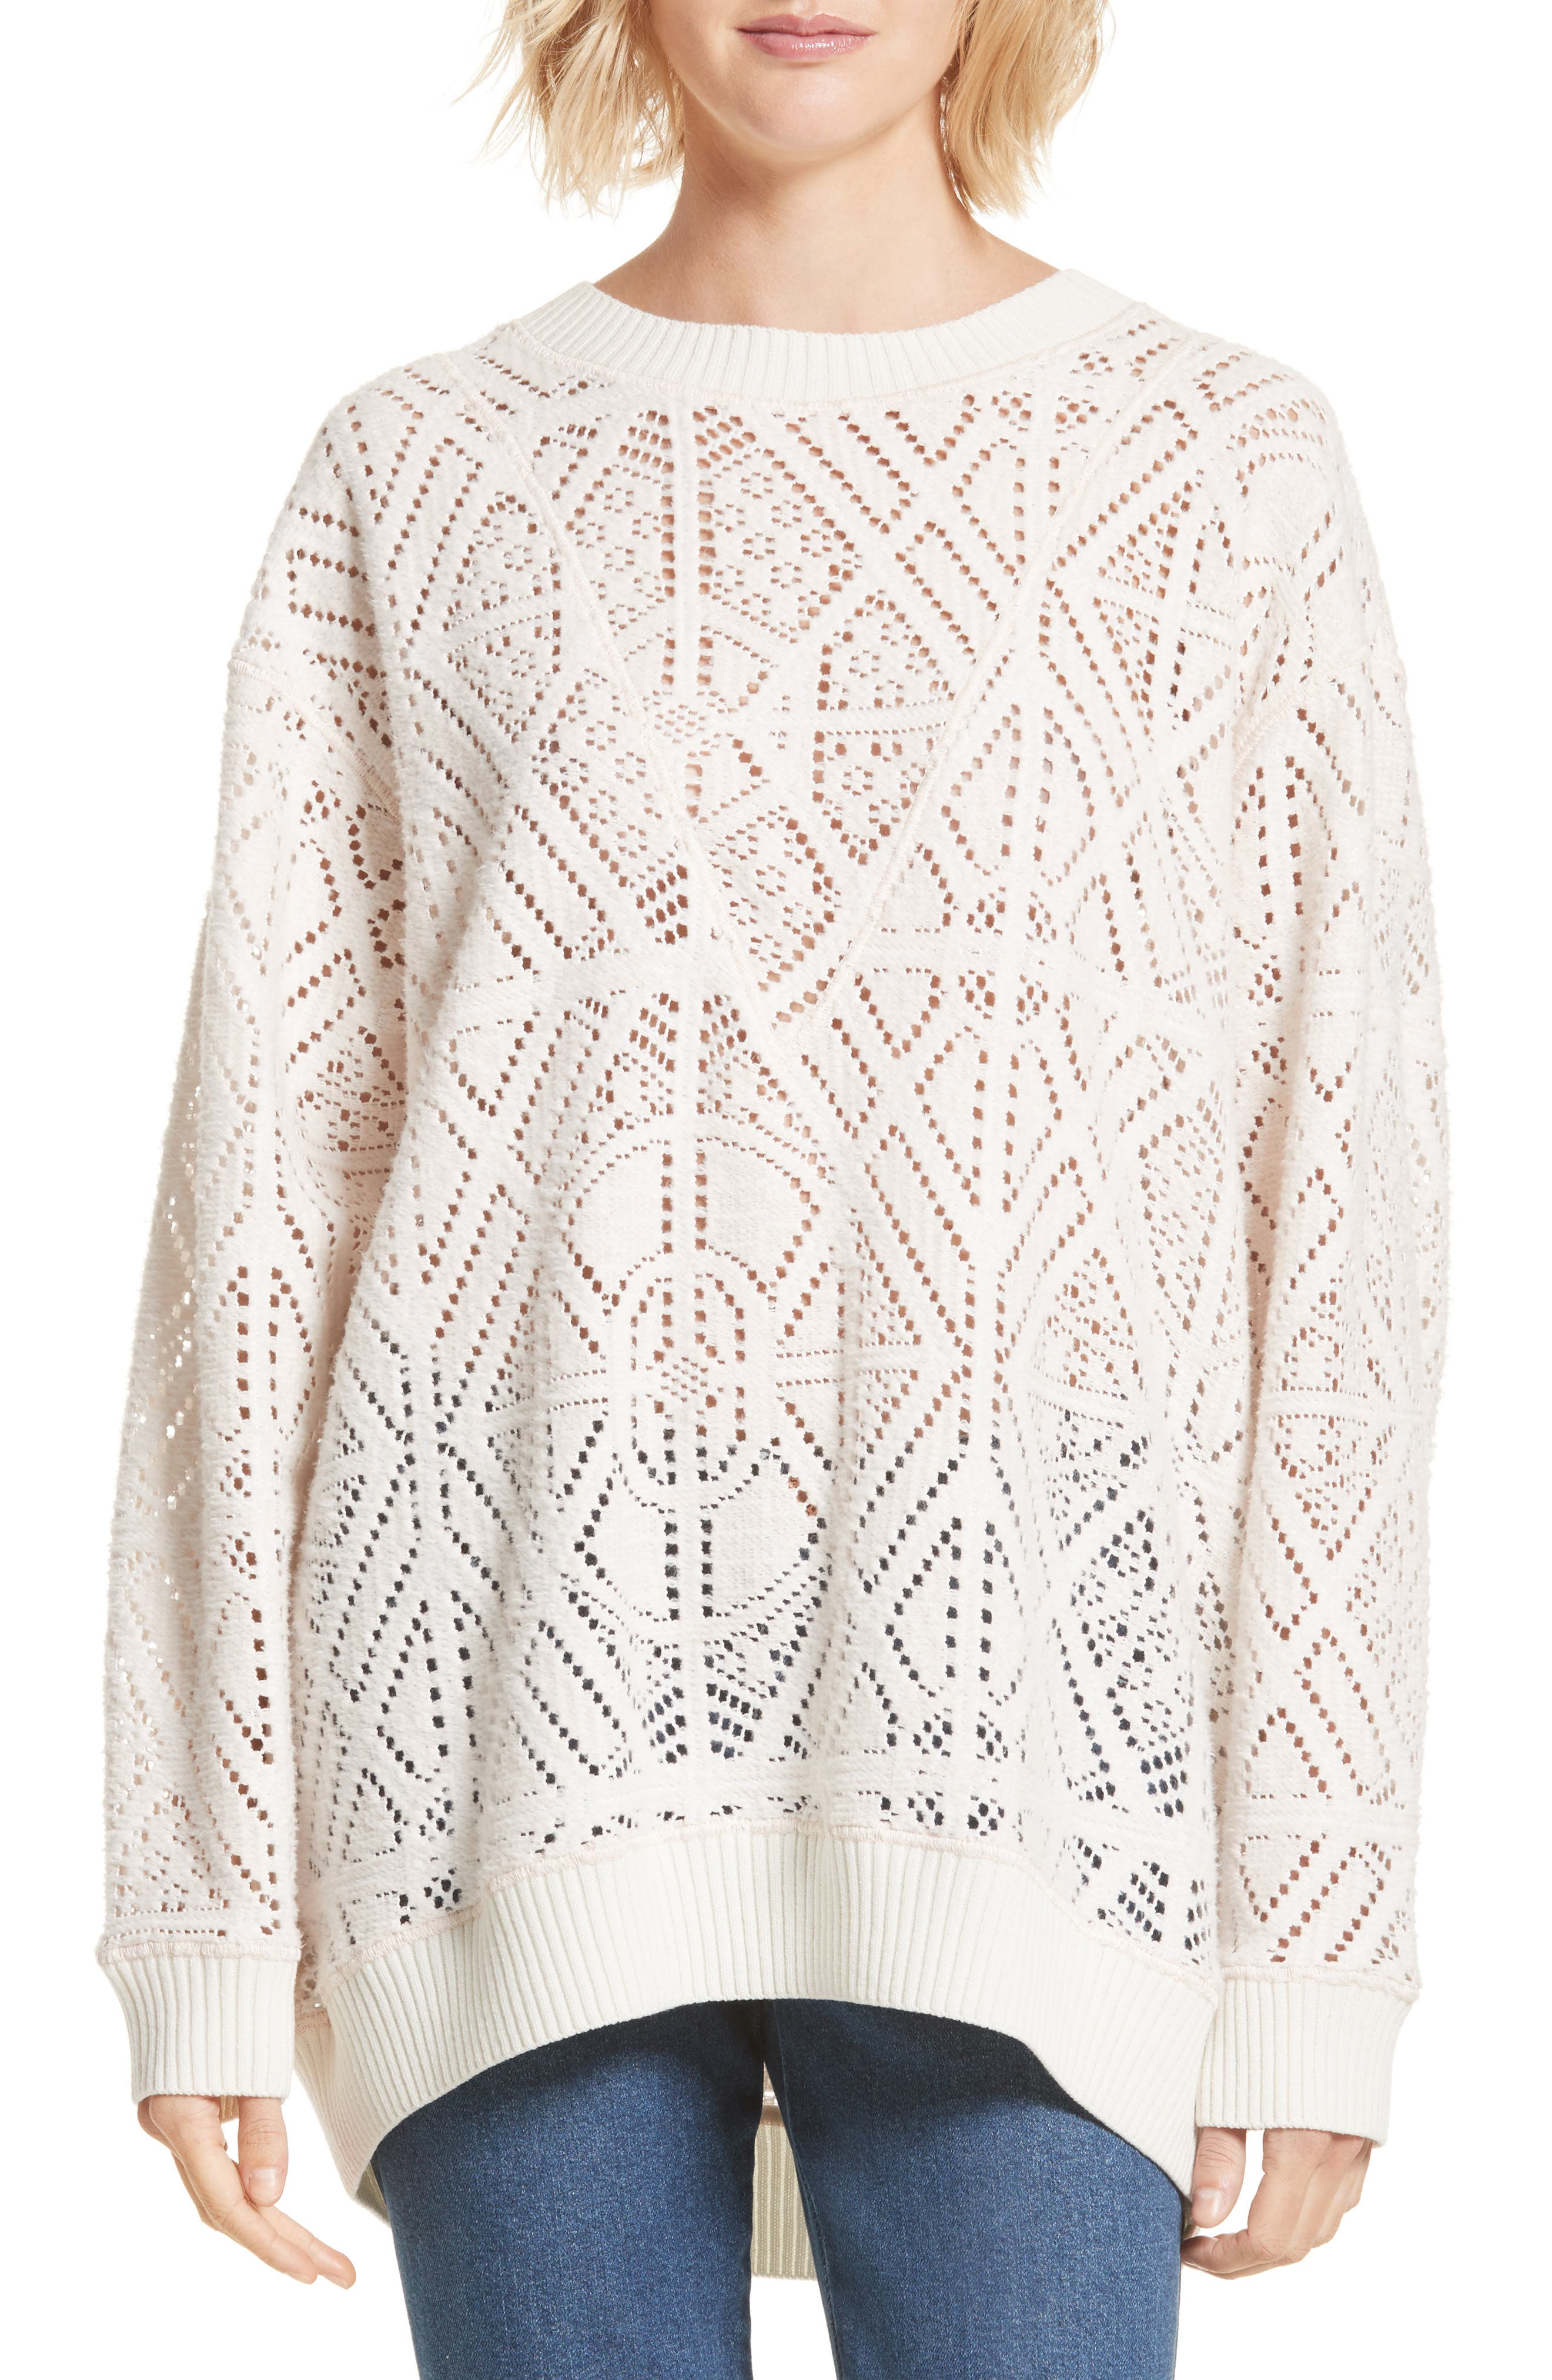 Alternate Image 1 Selected - See by Chloé Lace Knit Sweater